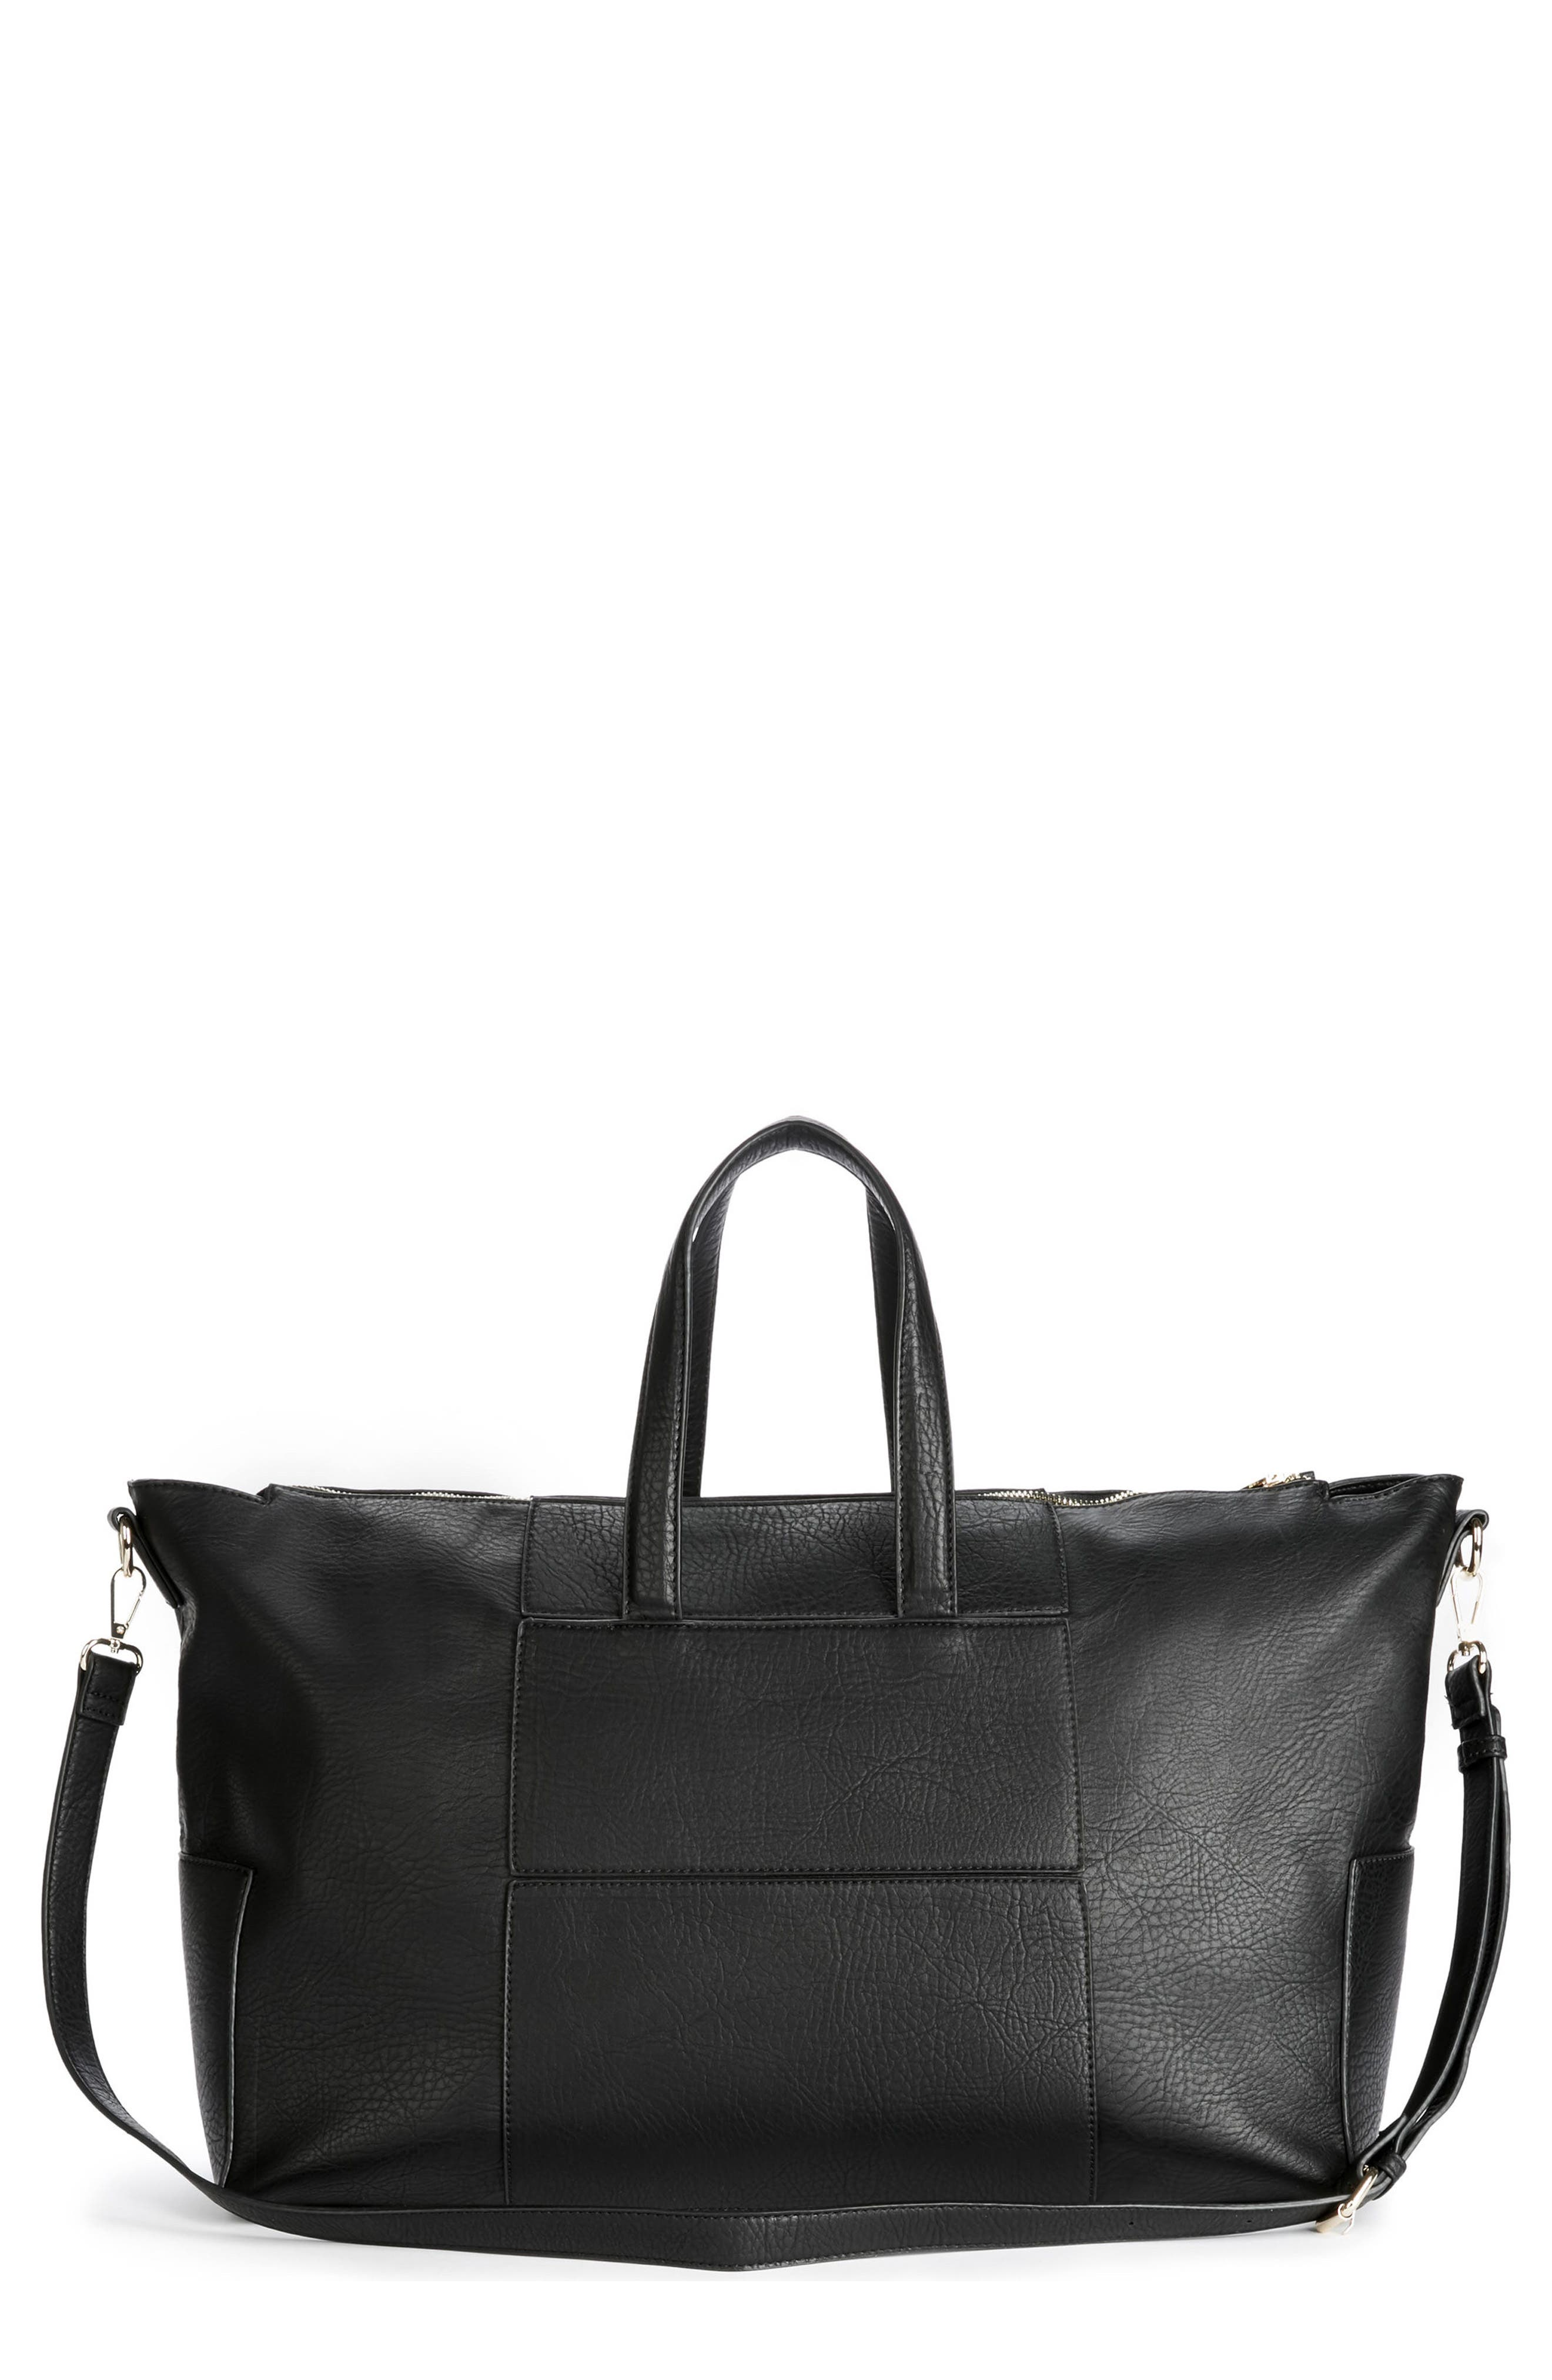 Cory Faux Leather Travel Tote,                         Main,                         color, Black